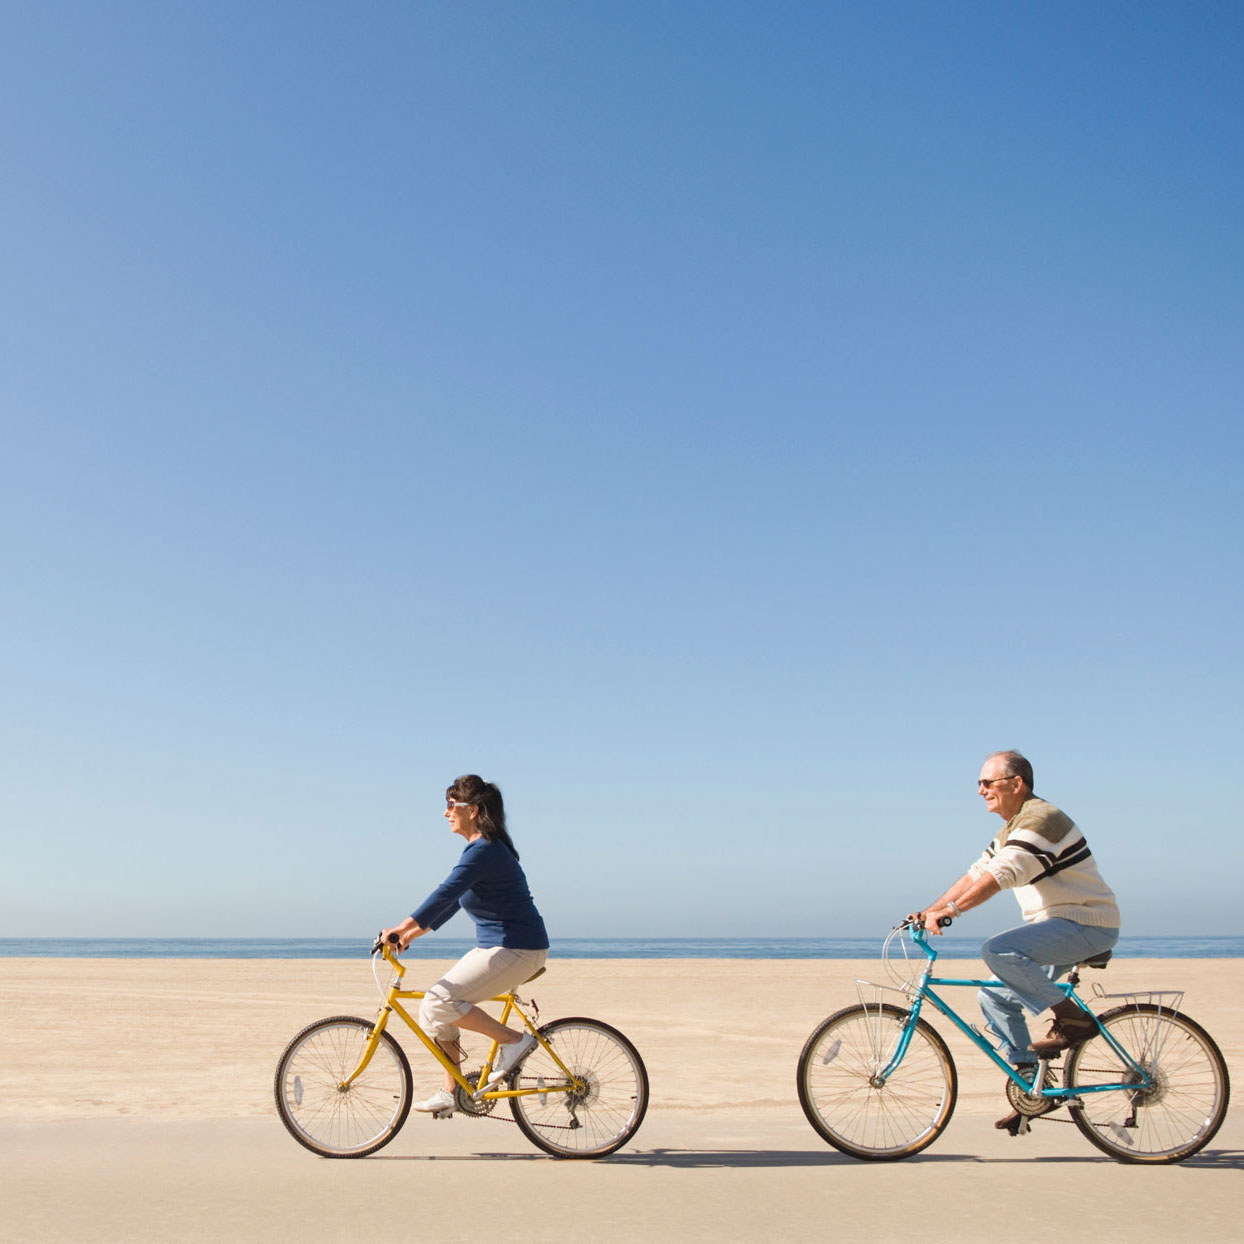 older man and woman riding a bike on a beach